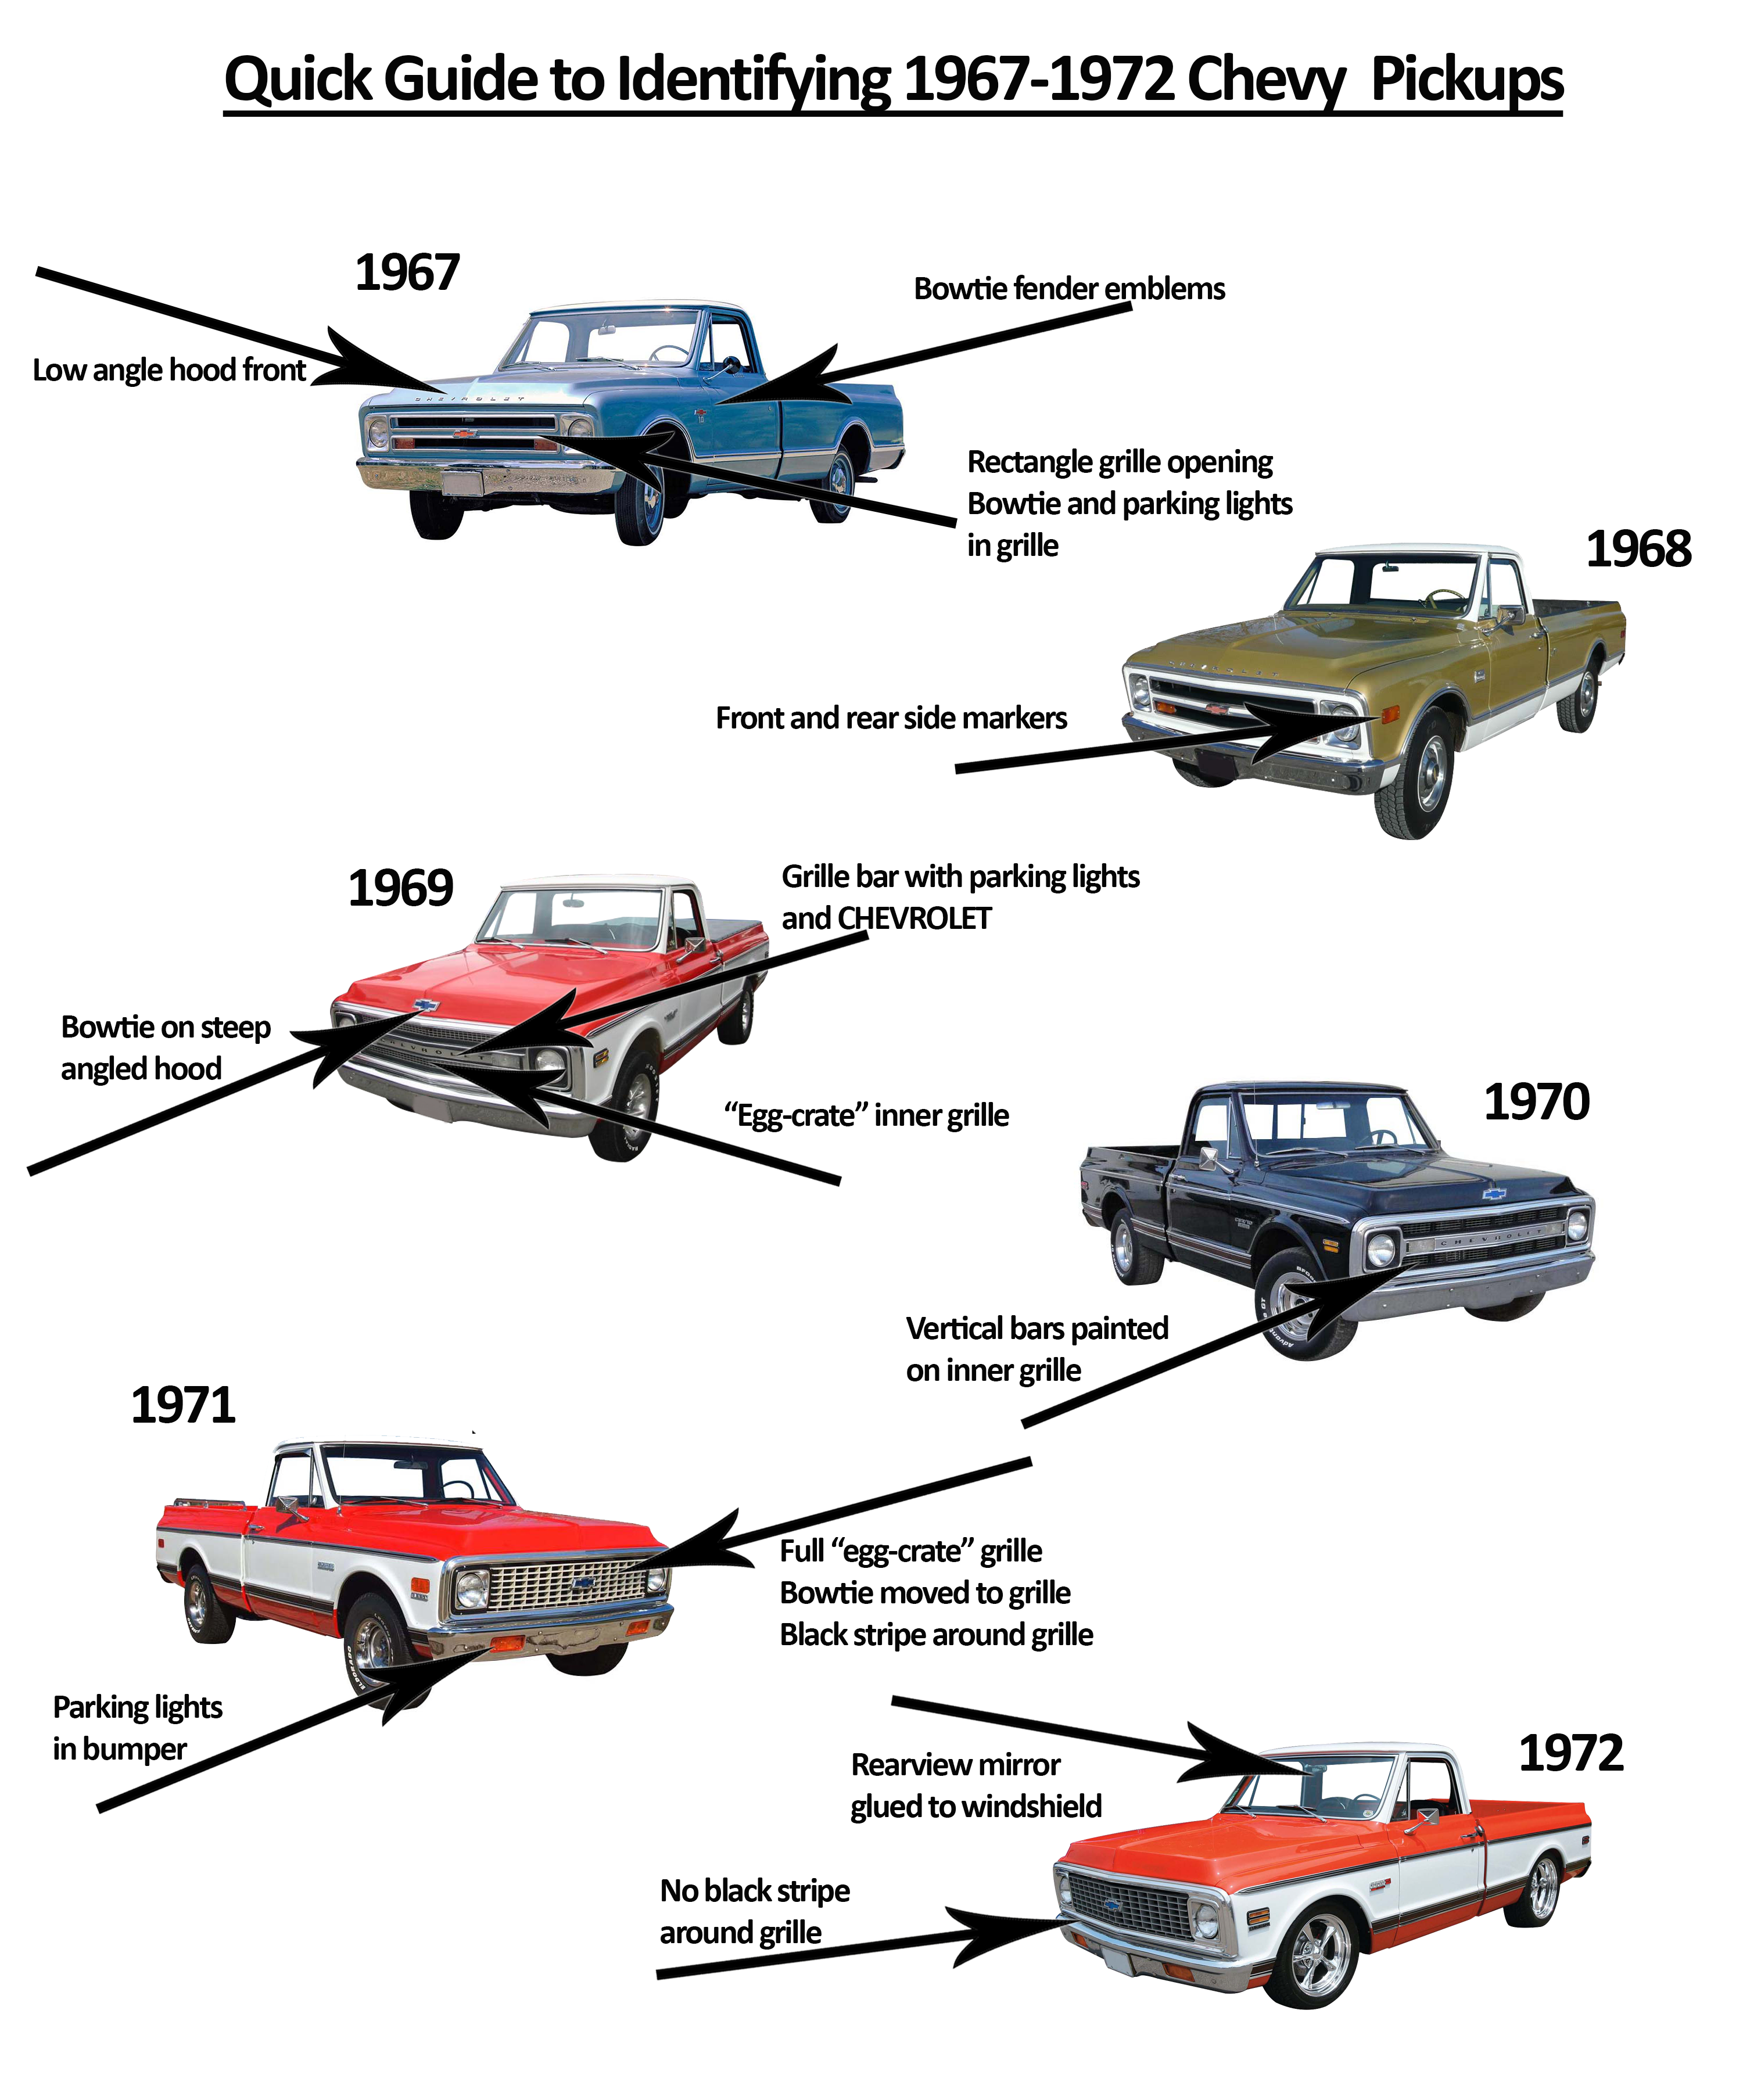 Auto Vehicle Parts >> Ride Guides: A Quick Guide to Identifying 1967-72 Chevrolet Pickups - OnAllCylinders